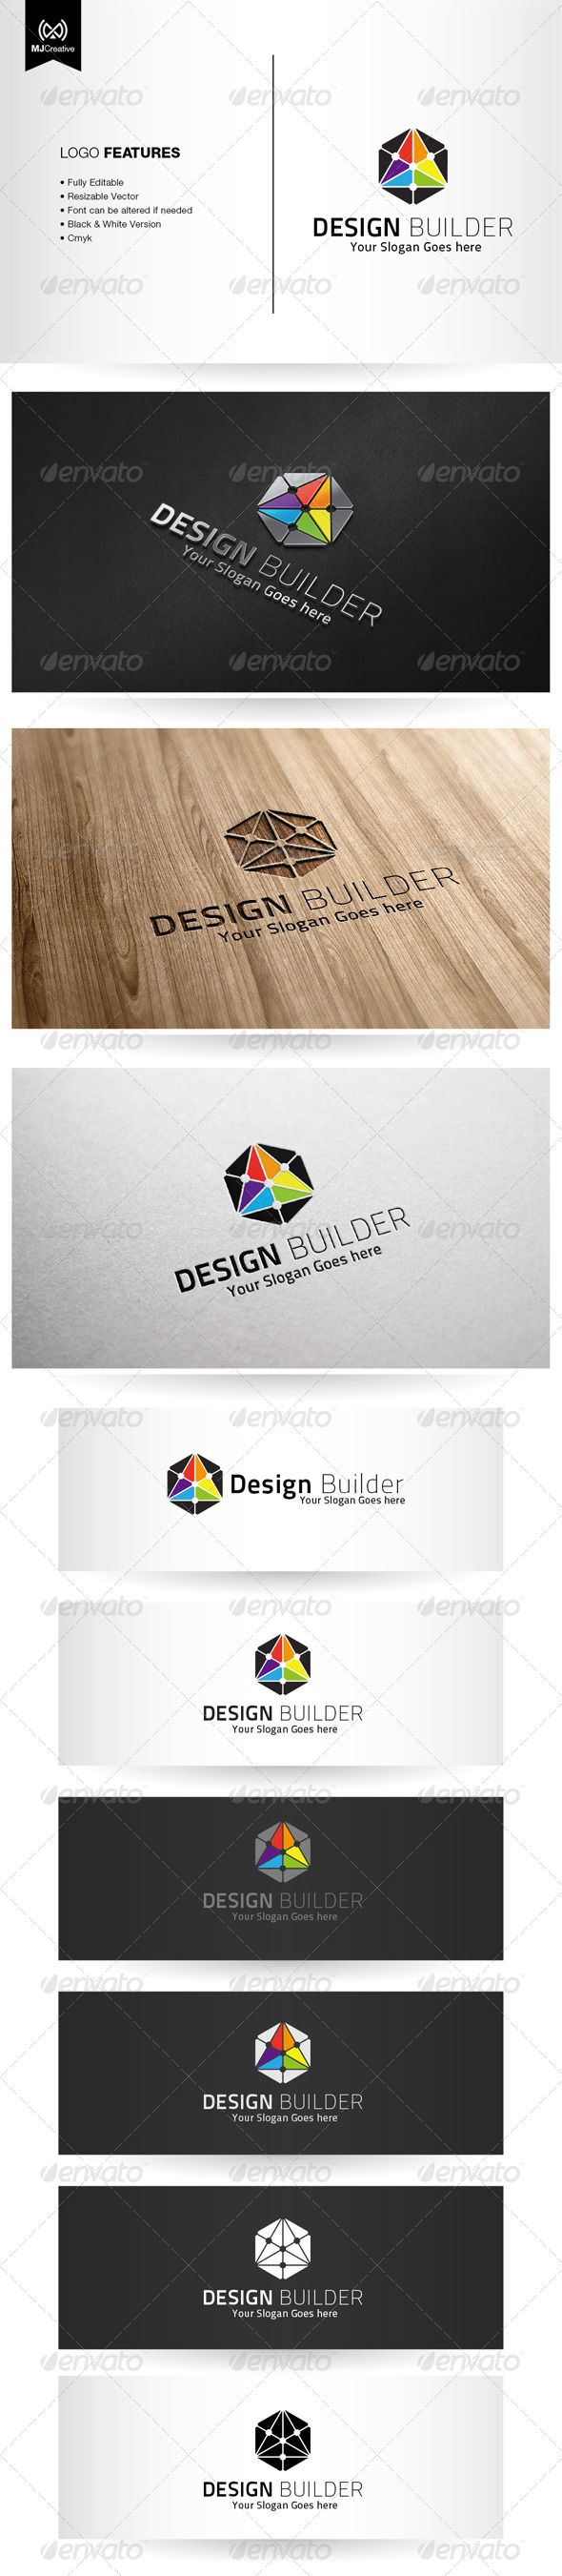 Design and Technology Logo by mjcreative Suitable for apps